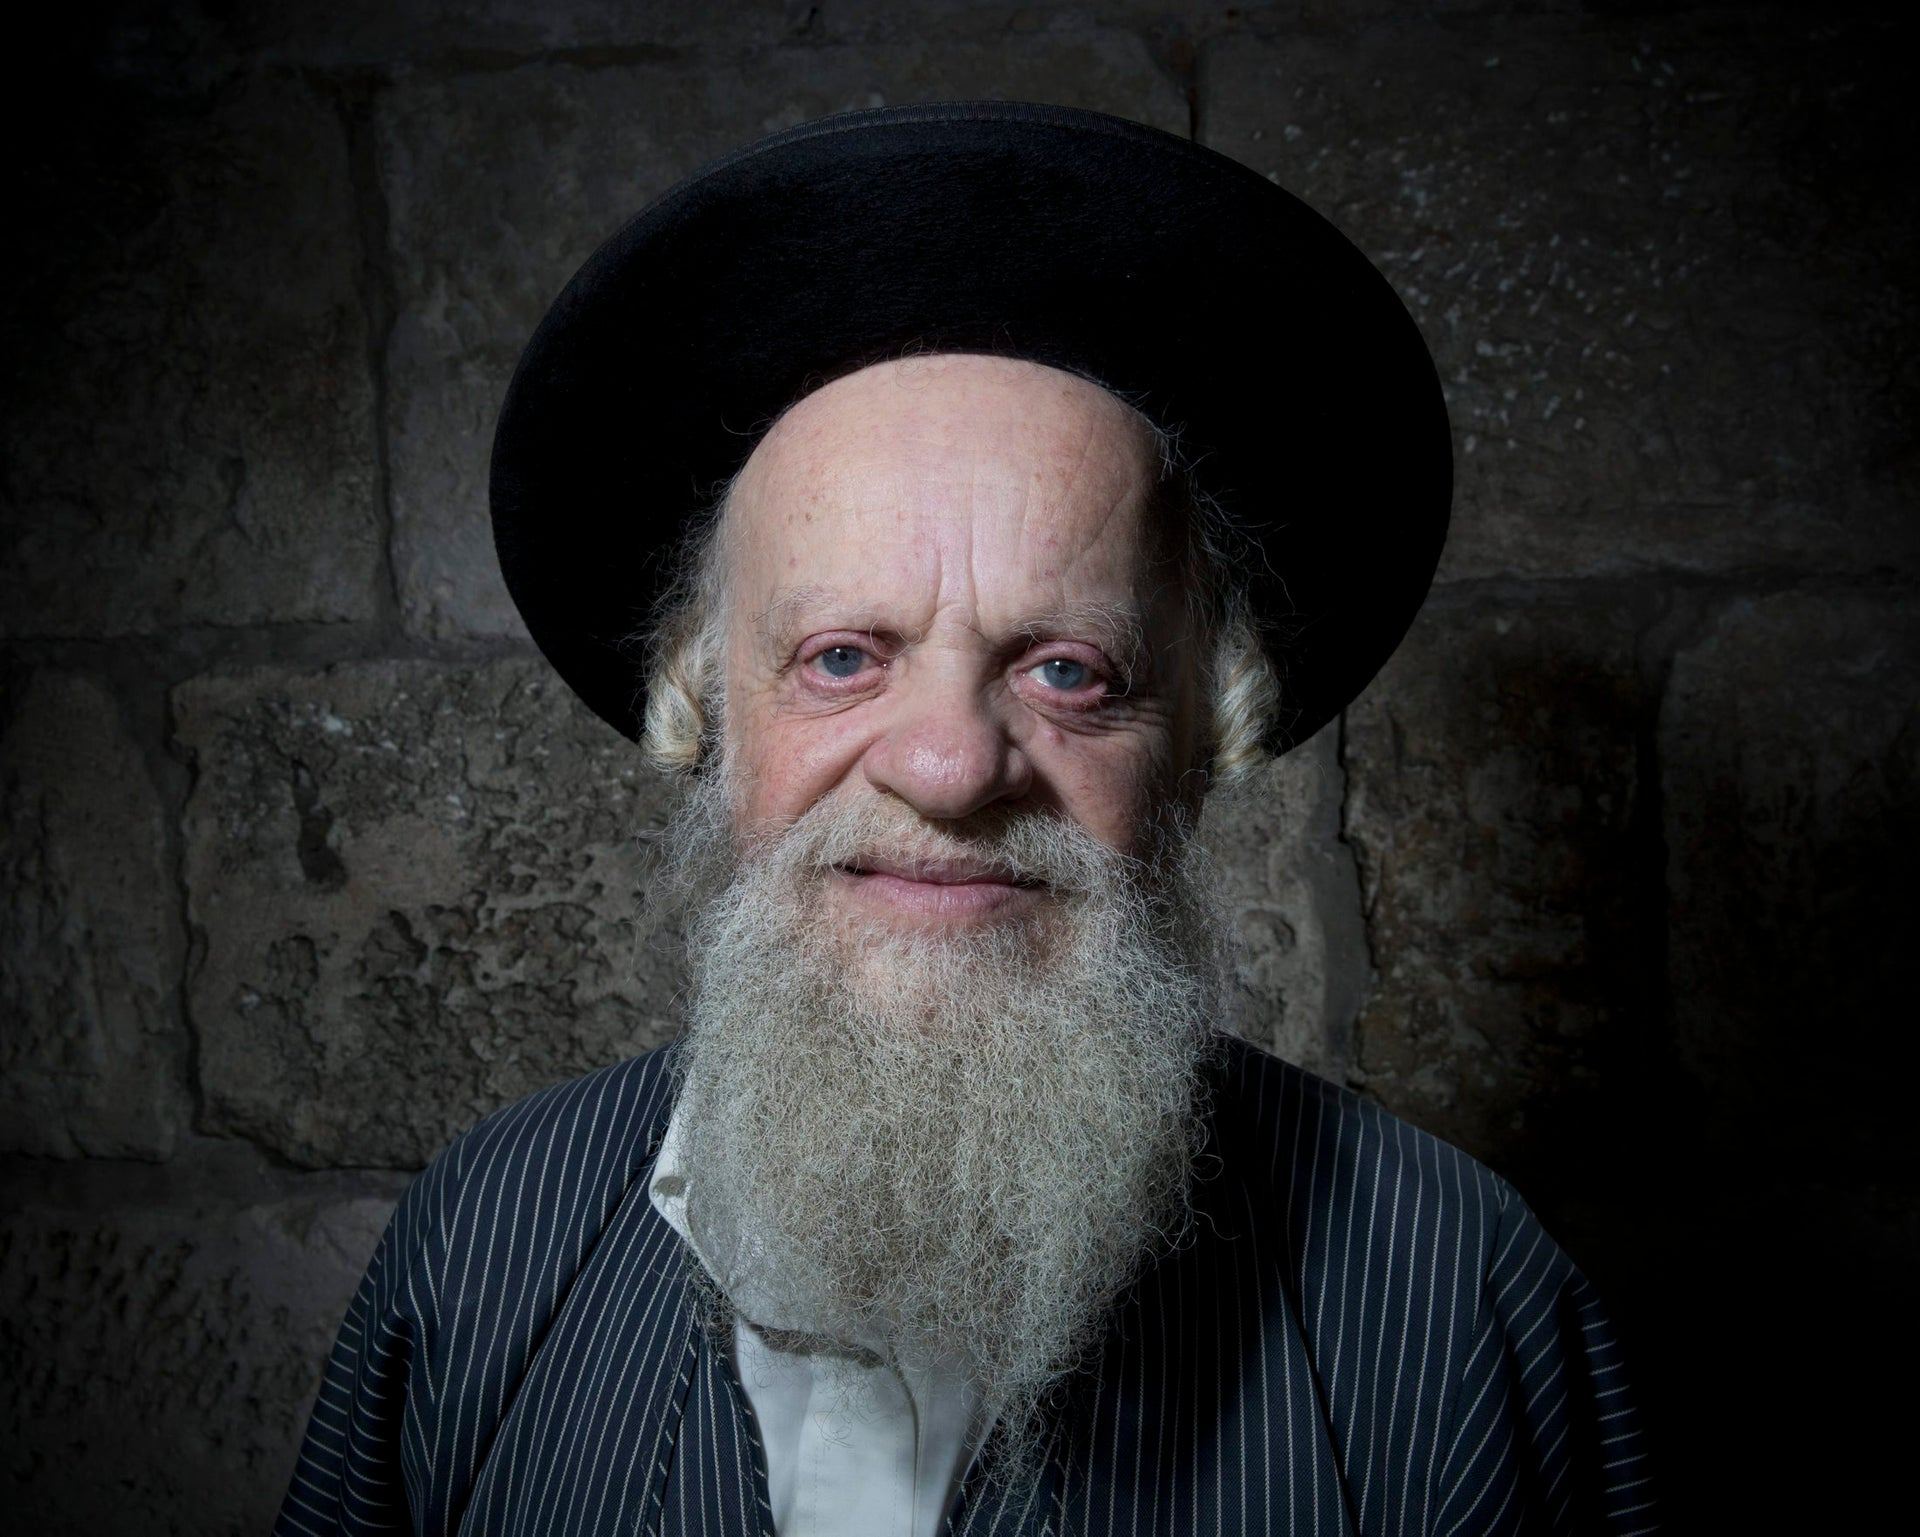 Efraim Grois, a Jewish Ultra-Orthodox poses for a portrait in Jerusalem's Old City, Feb. 11, 2018.